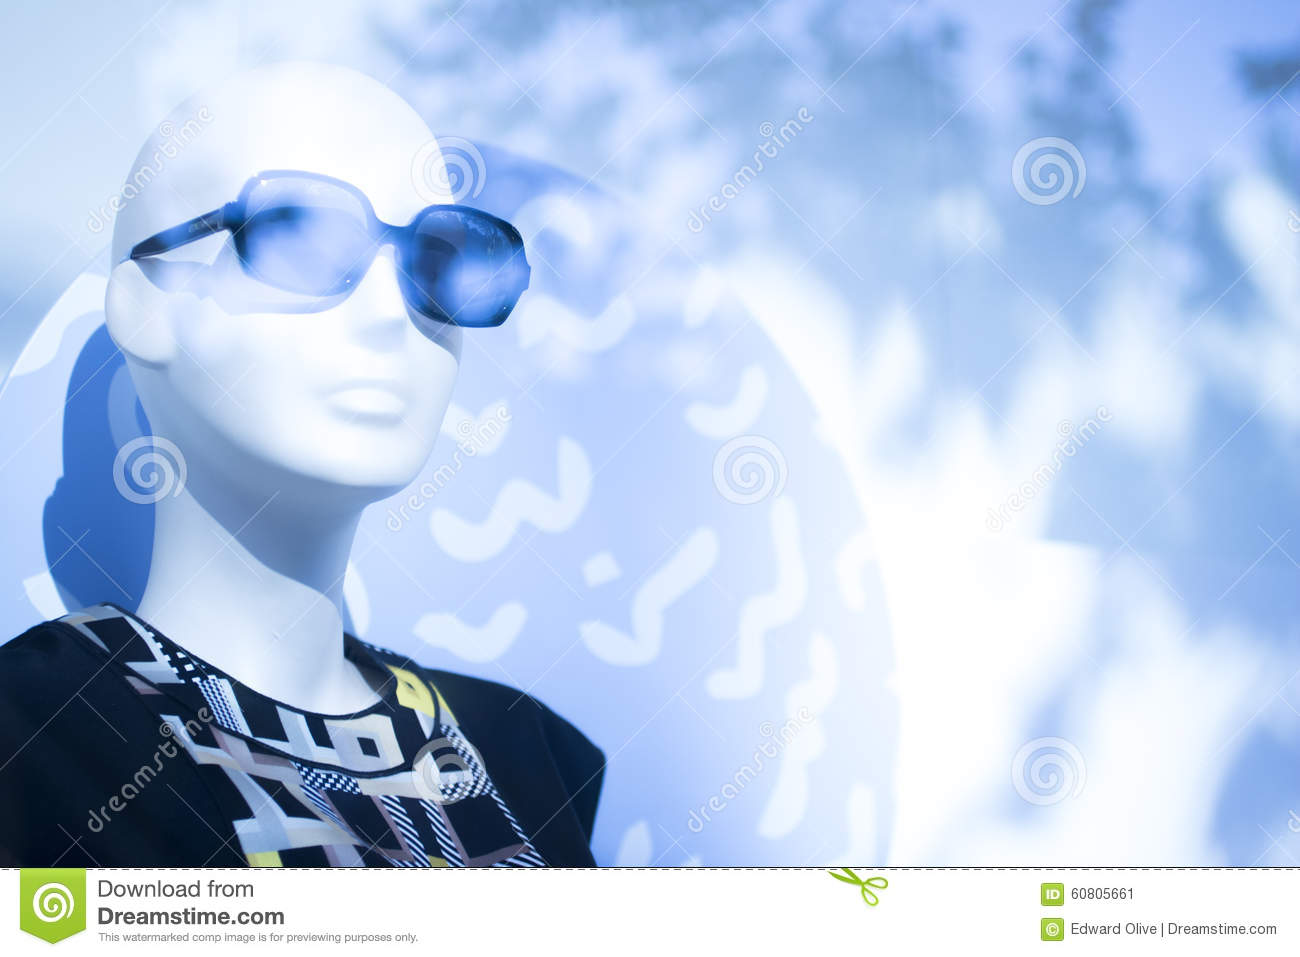 75436d9bab Shop dummy fashion mannequin in store boutique shop window wearing dark  sunglasses artistic photo.